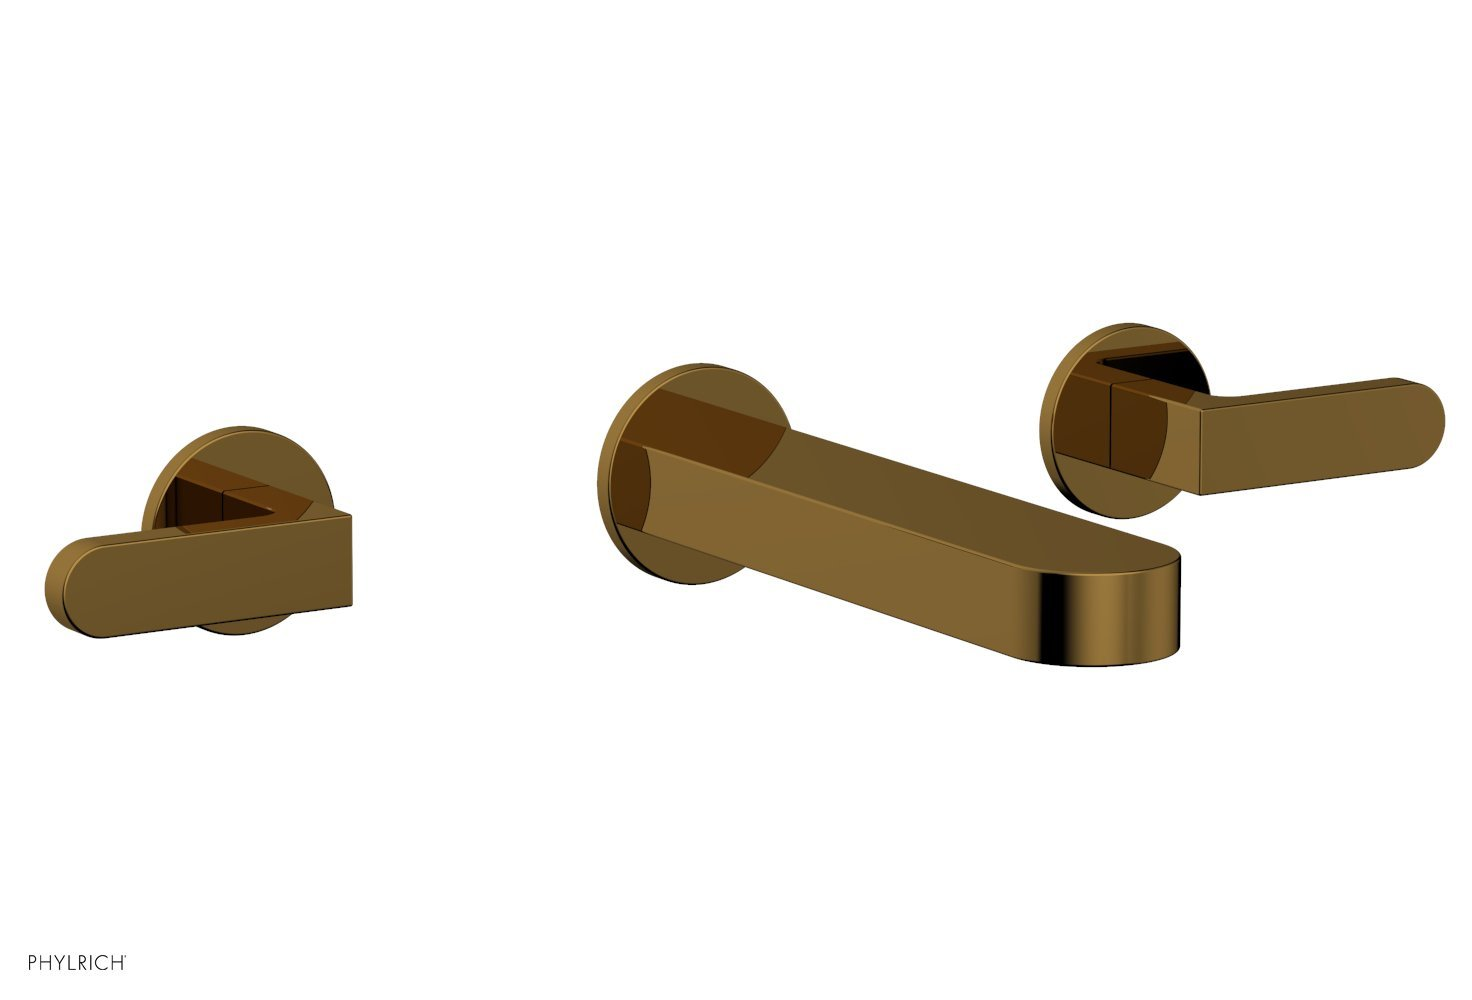 Phylrich 183-12-002 ROND Wall Lavatory Set - Lever Handles - French Brass